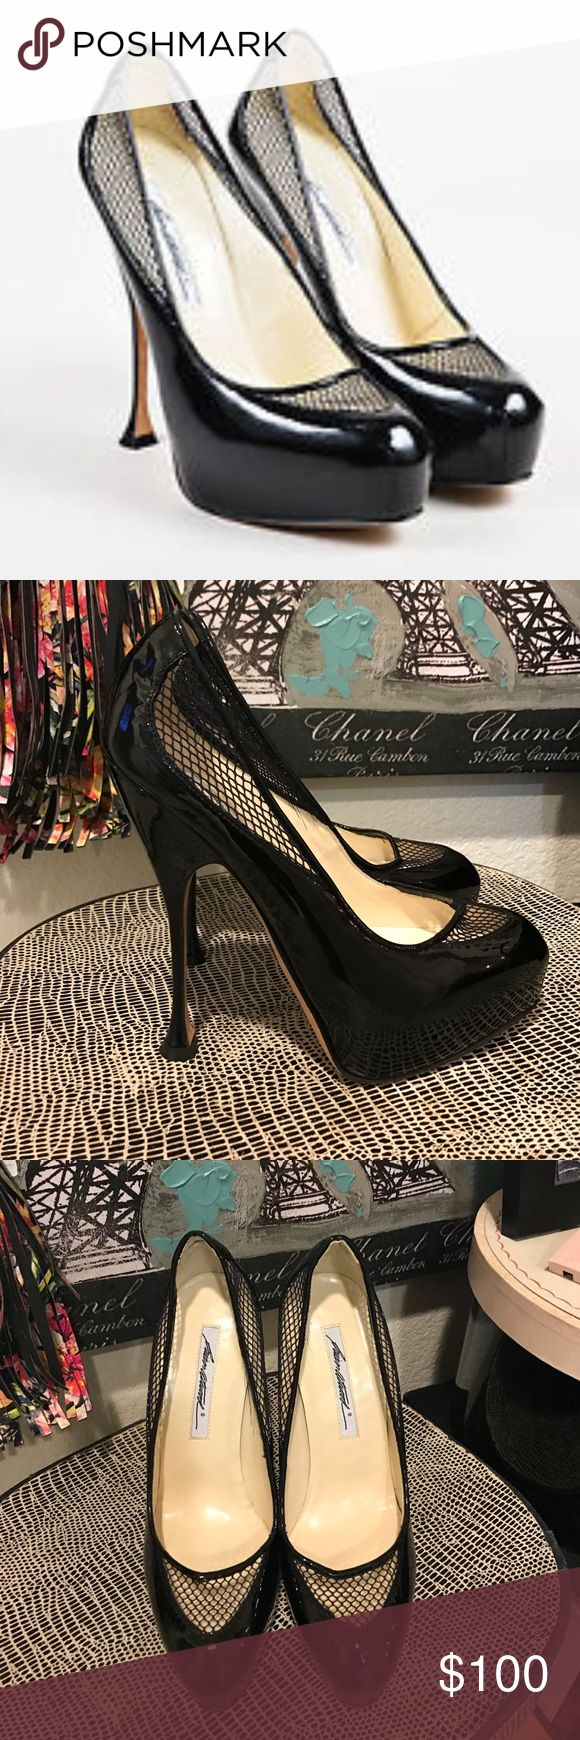 Brian Atwood Mesh Platform Pumps Patent Shoes Brian Atwood Mesh Platform Pumps Patent Shoes. Excellent condition. Seldom worn. Size 38.5. Brian Atwood Shoes Platforms